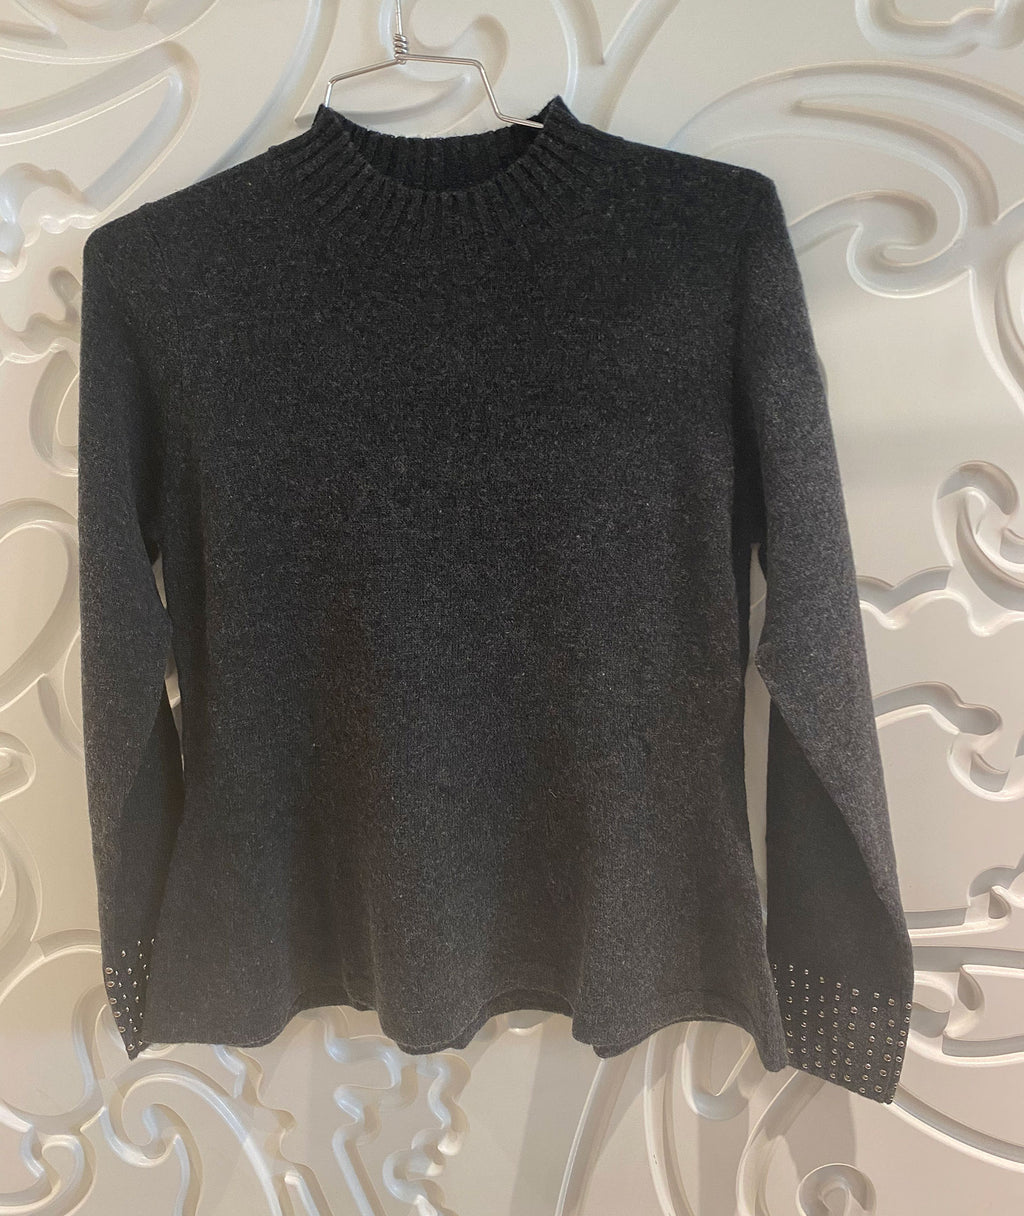 Autumn Cashmere Girls Peplum Charcoal Sweater